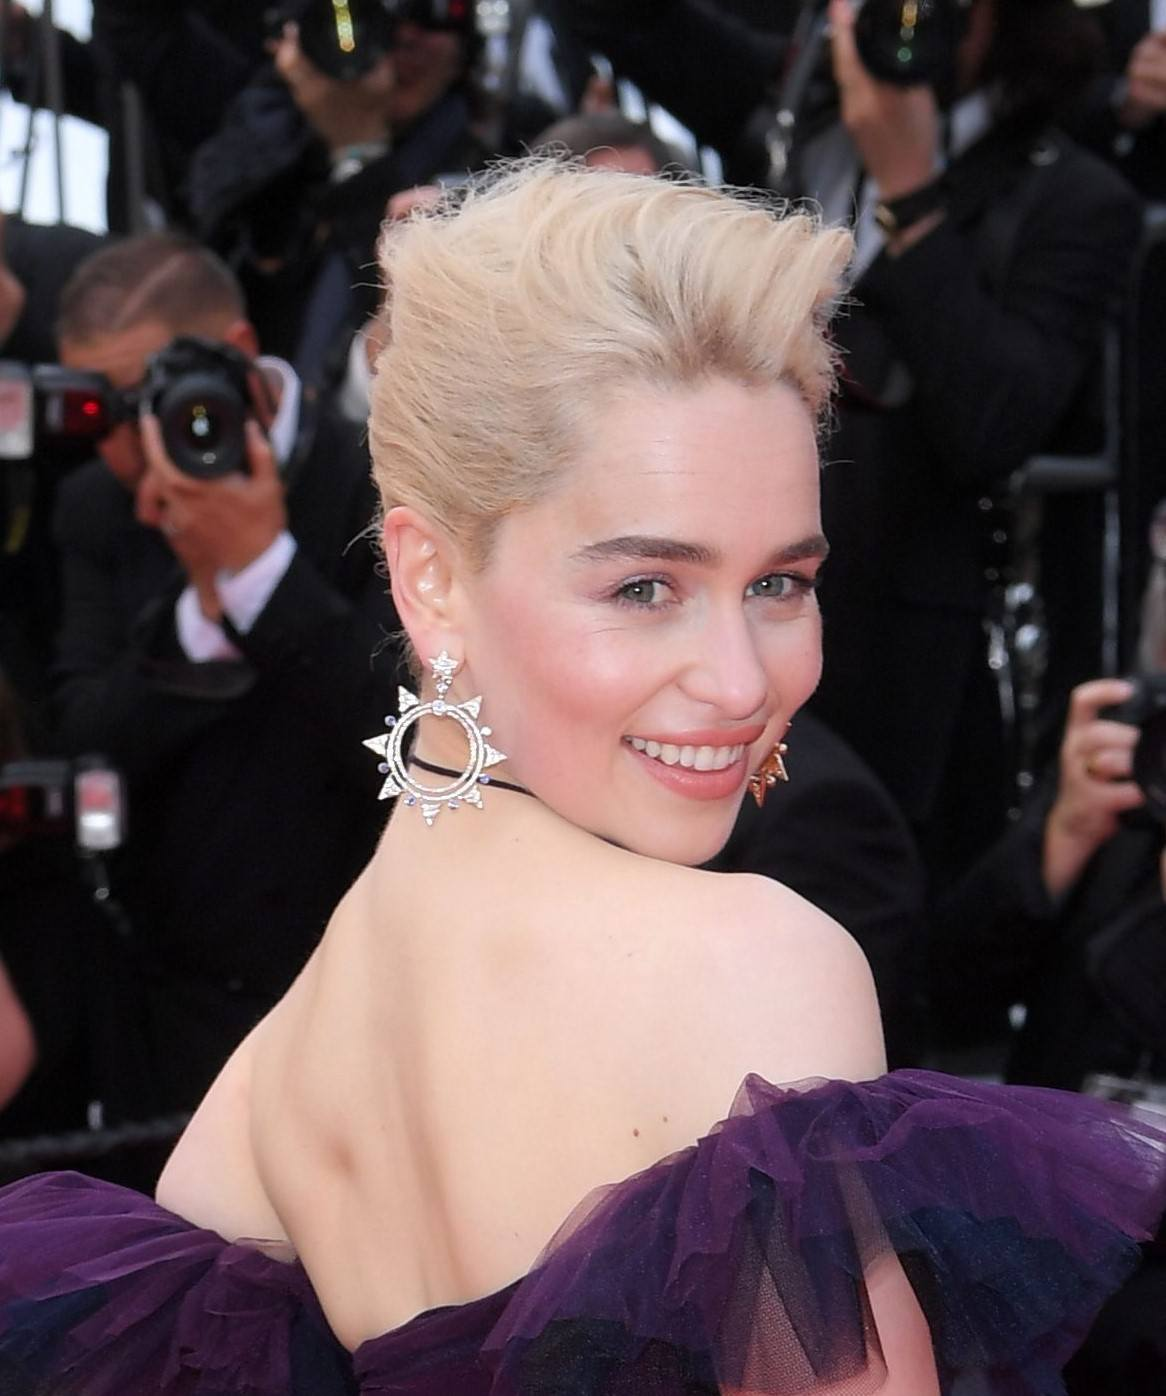 Formal hairstyles for short hair: Red carpet photo of Emilia Clarke with platinum blonde hair in a pompadour updo